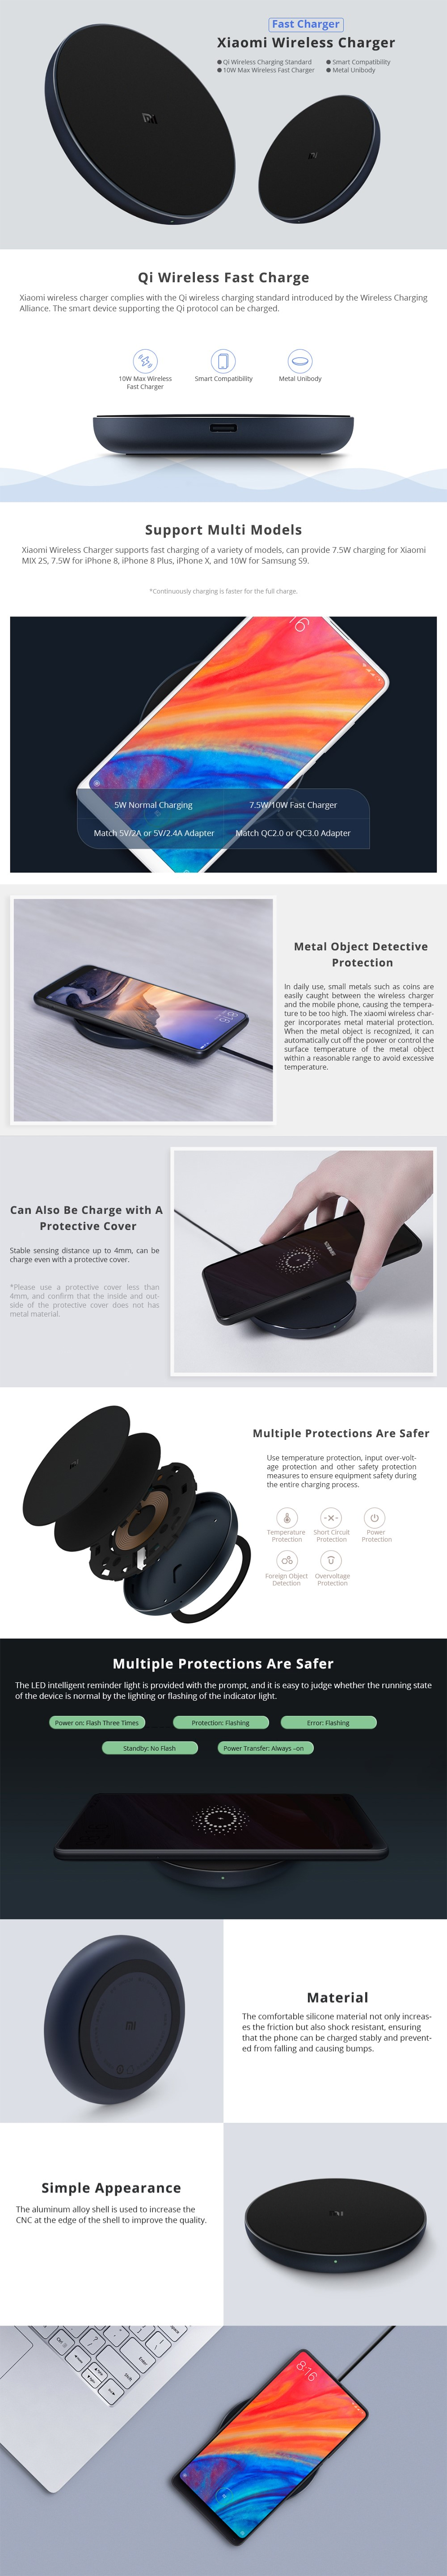 Xiaomi Qi Standard Wireless Fast Charger 10W for iPhone XS / XR / XS MAX Samsung Galaxy S7 S8 S9 S10